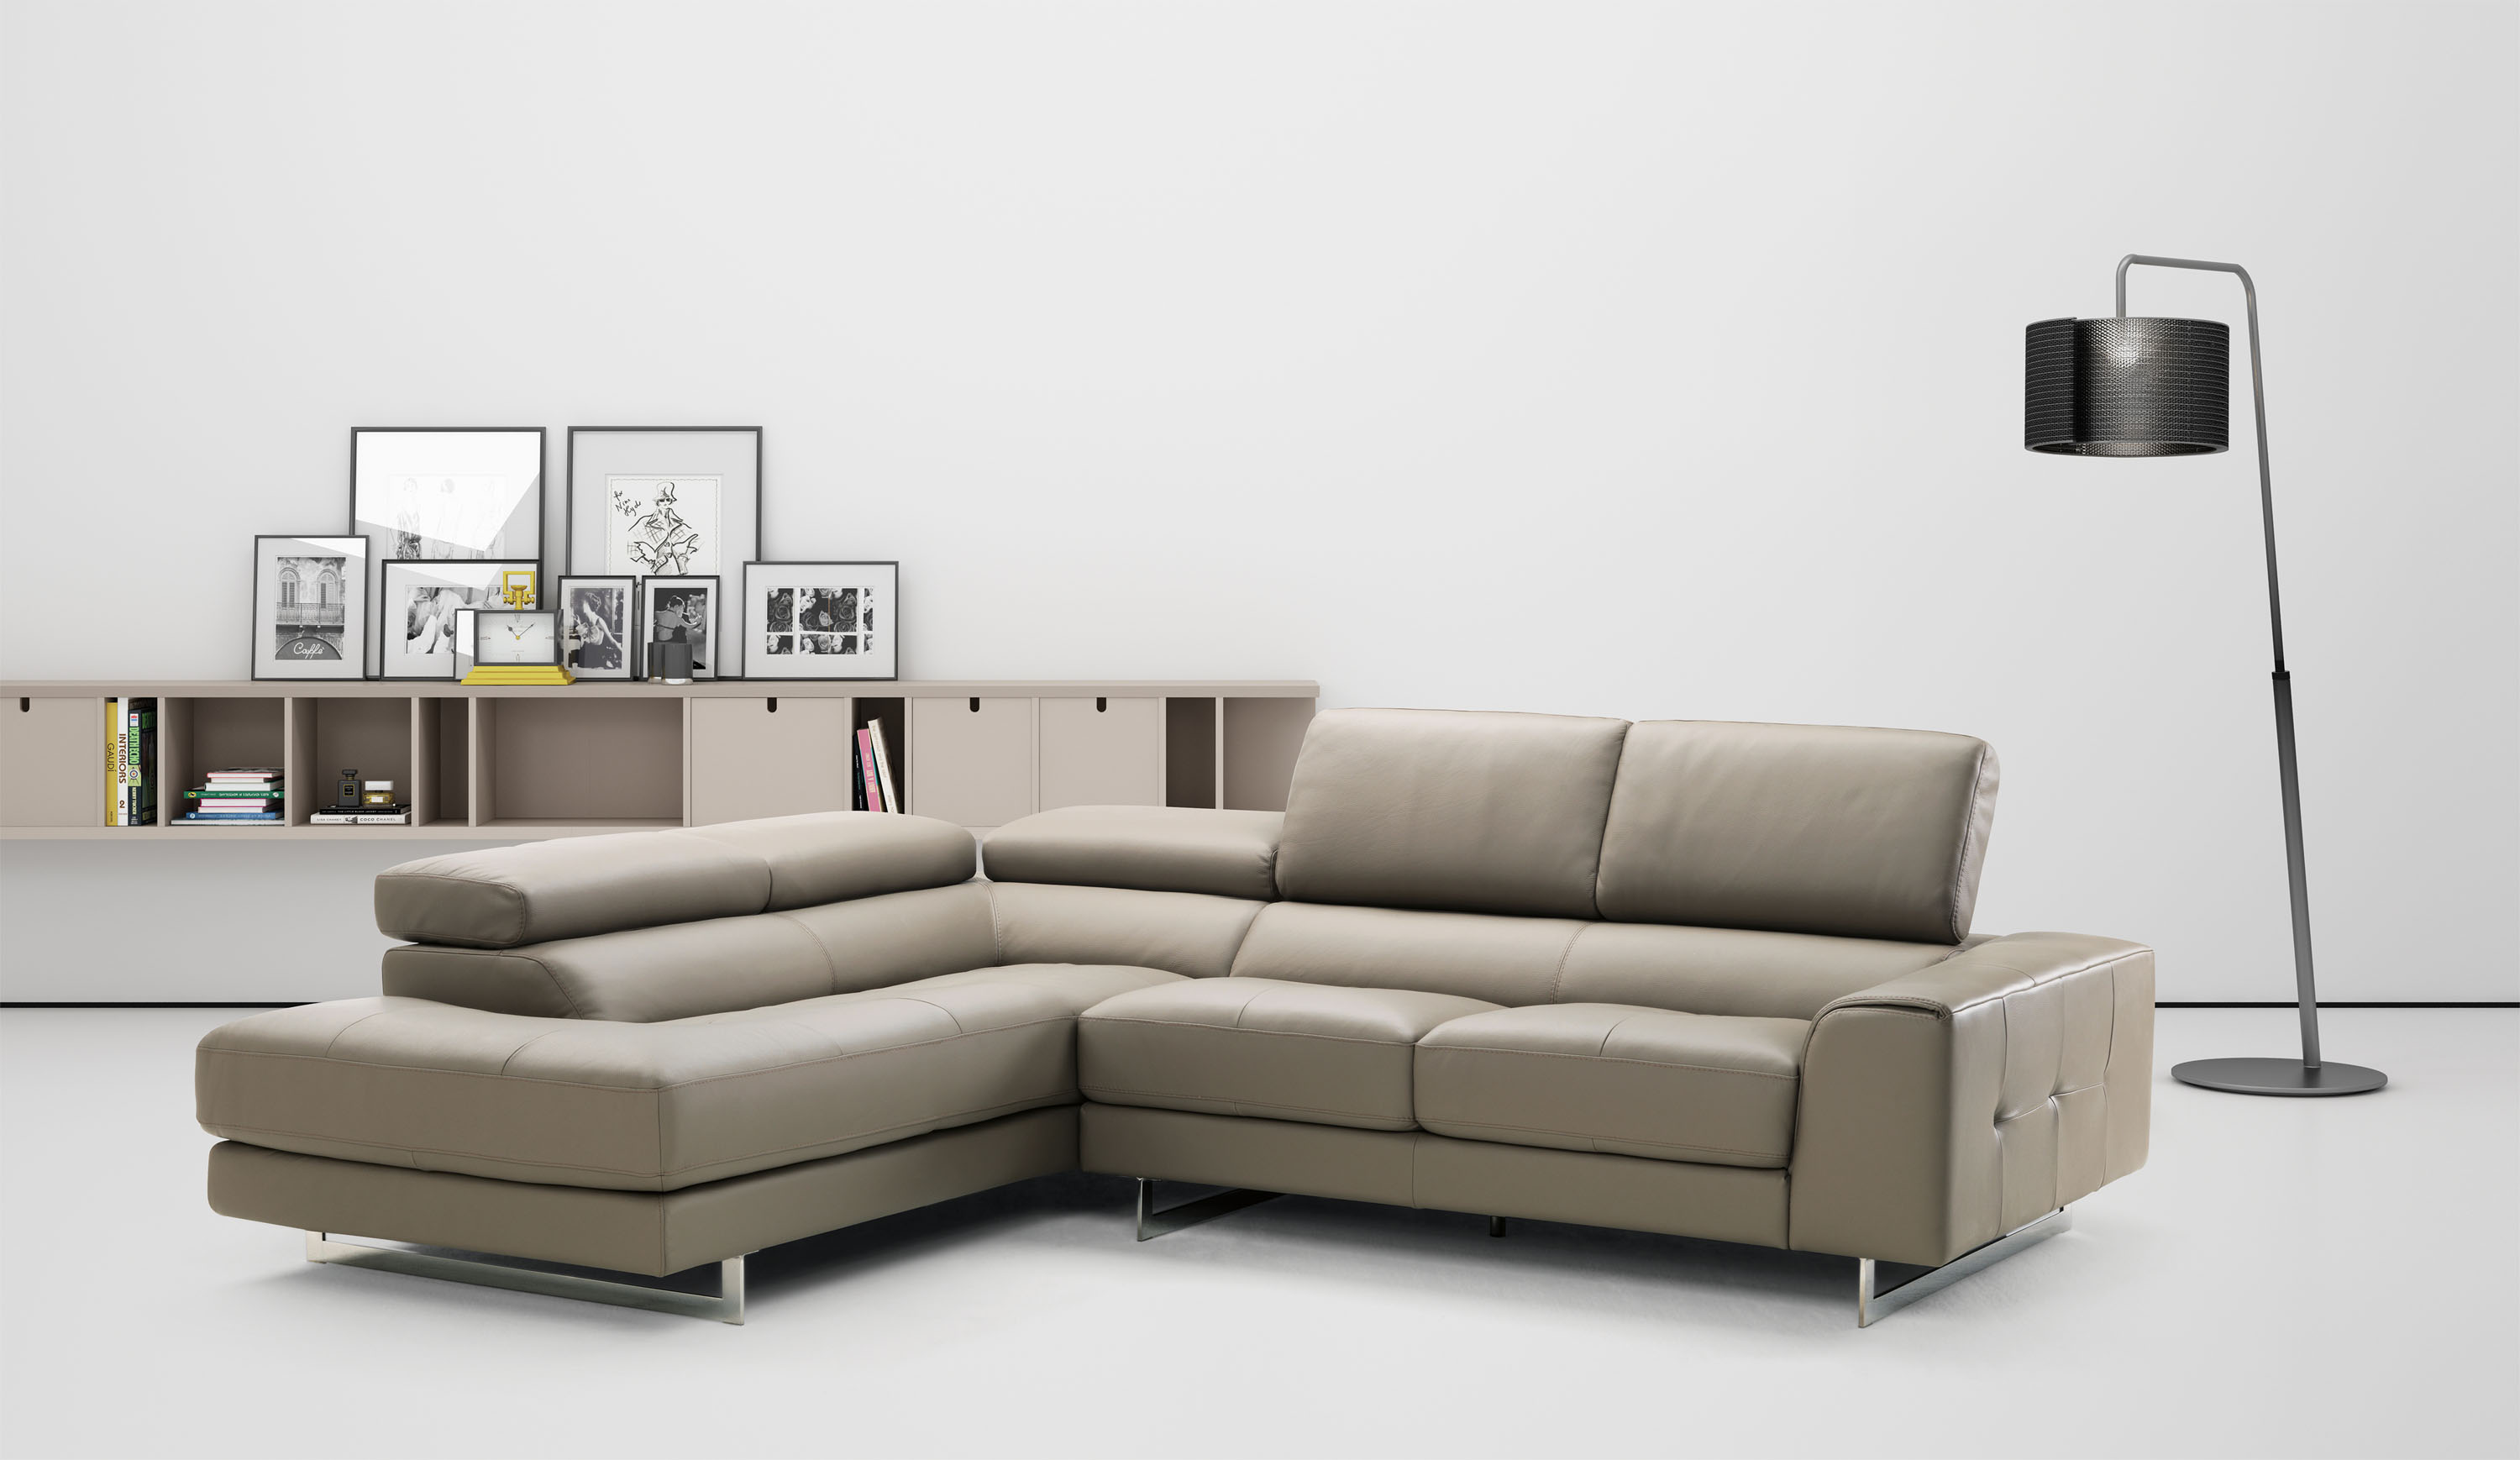 Extra Small Studio Size Brown Leather Sectional with Optional Love